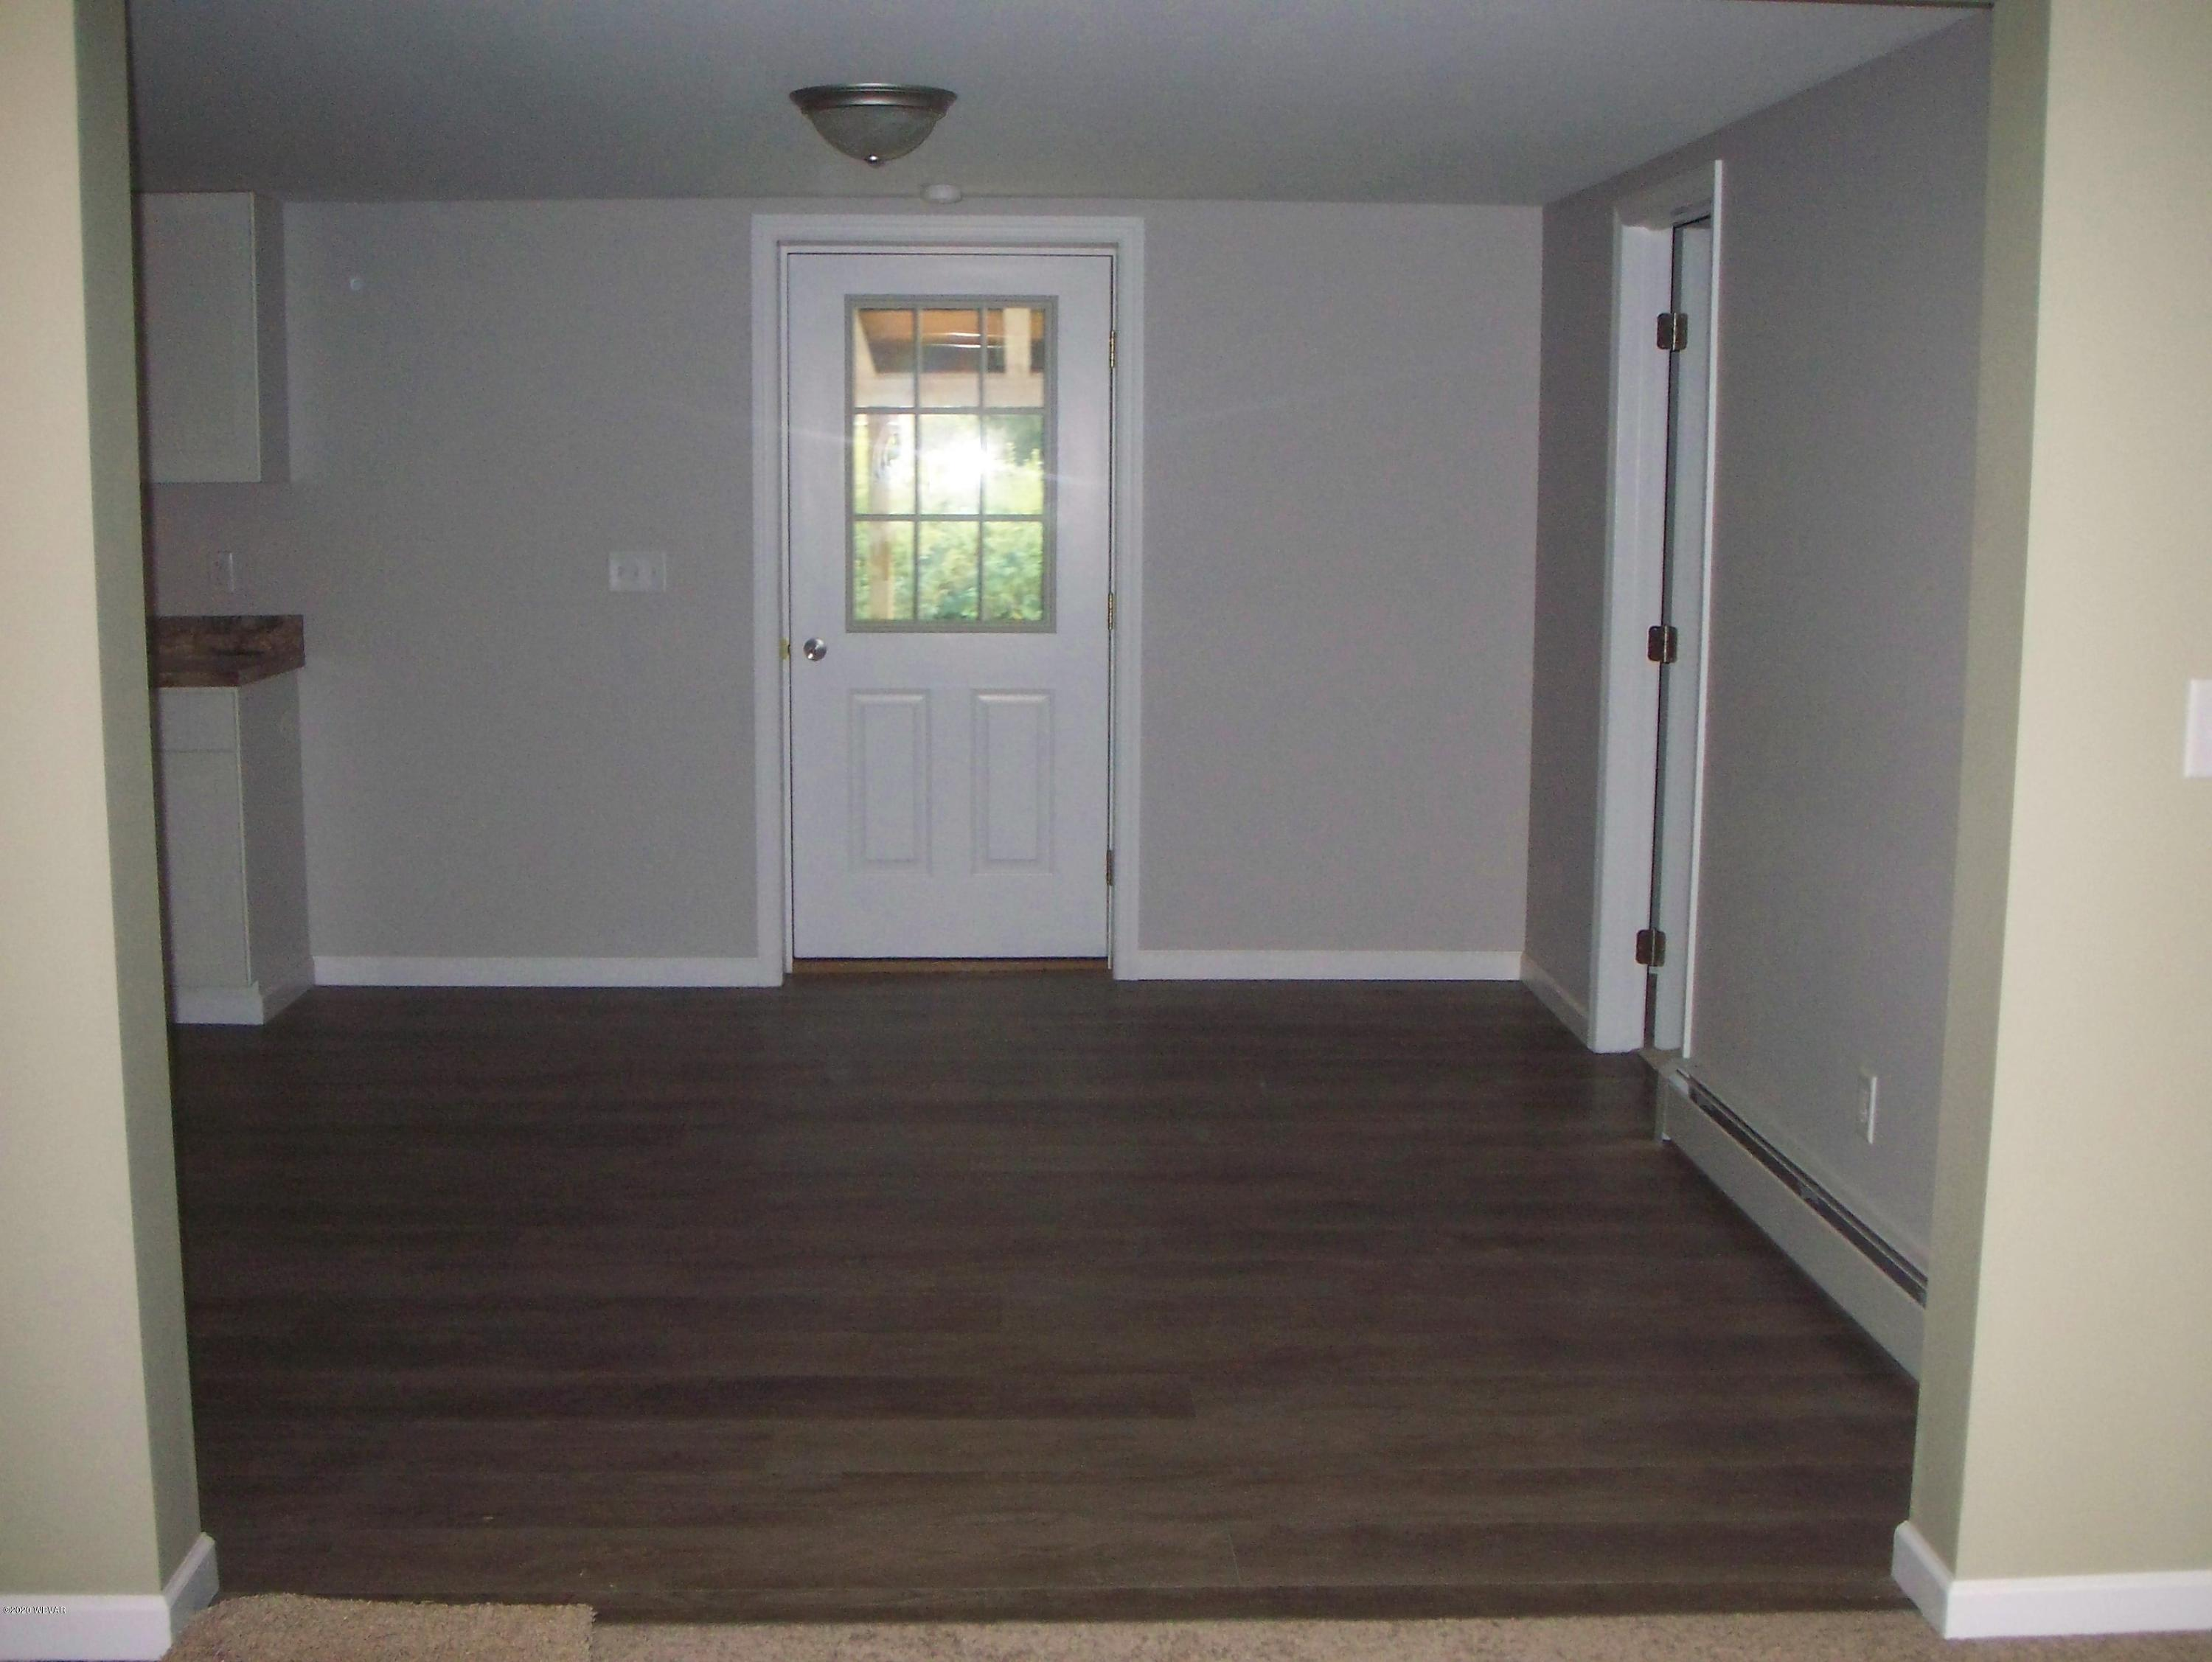 1839 MERRILL AVENUE, Williamsport, PA 17701, 2 Bedrooms Bedrooms, ,1 BathroomBathrooms,Residential,For sale,MERRILL,WB-91345